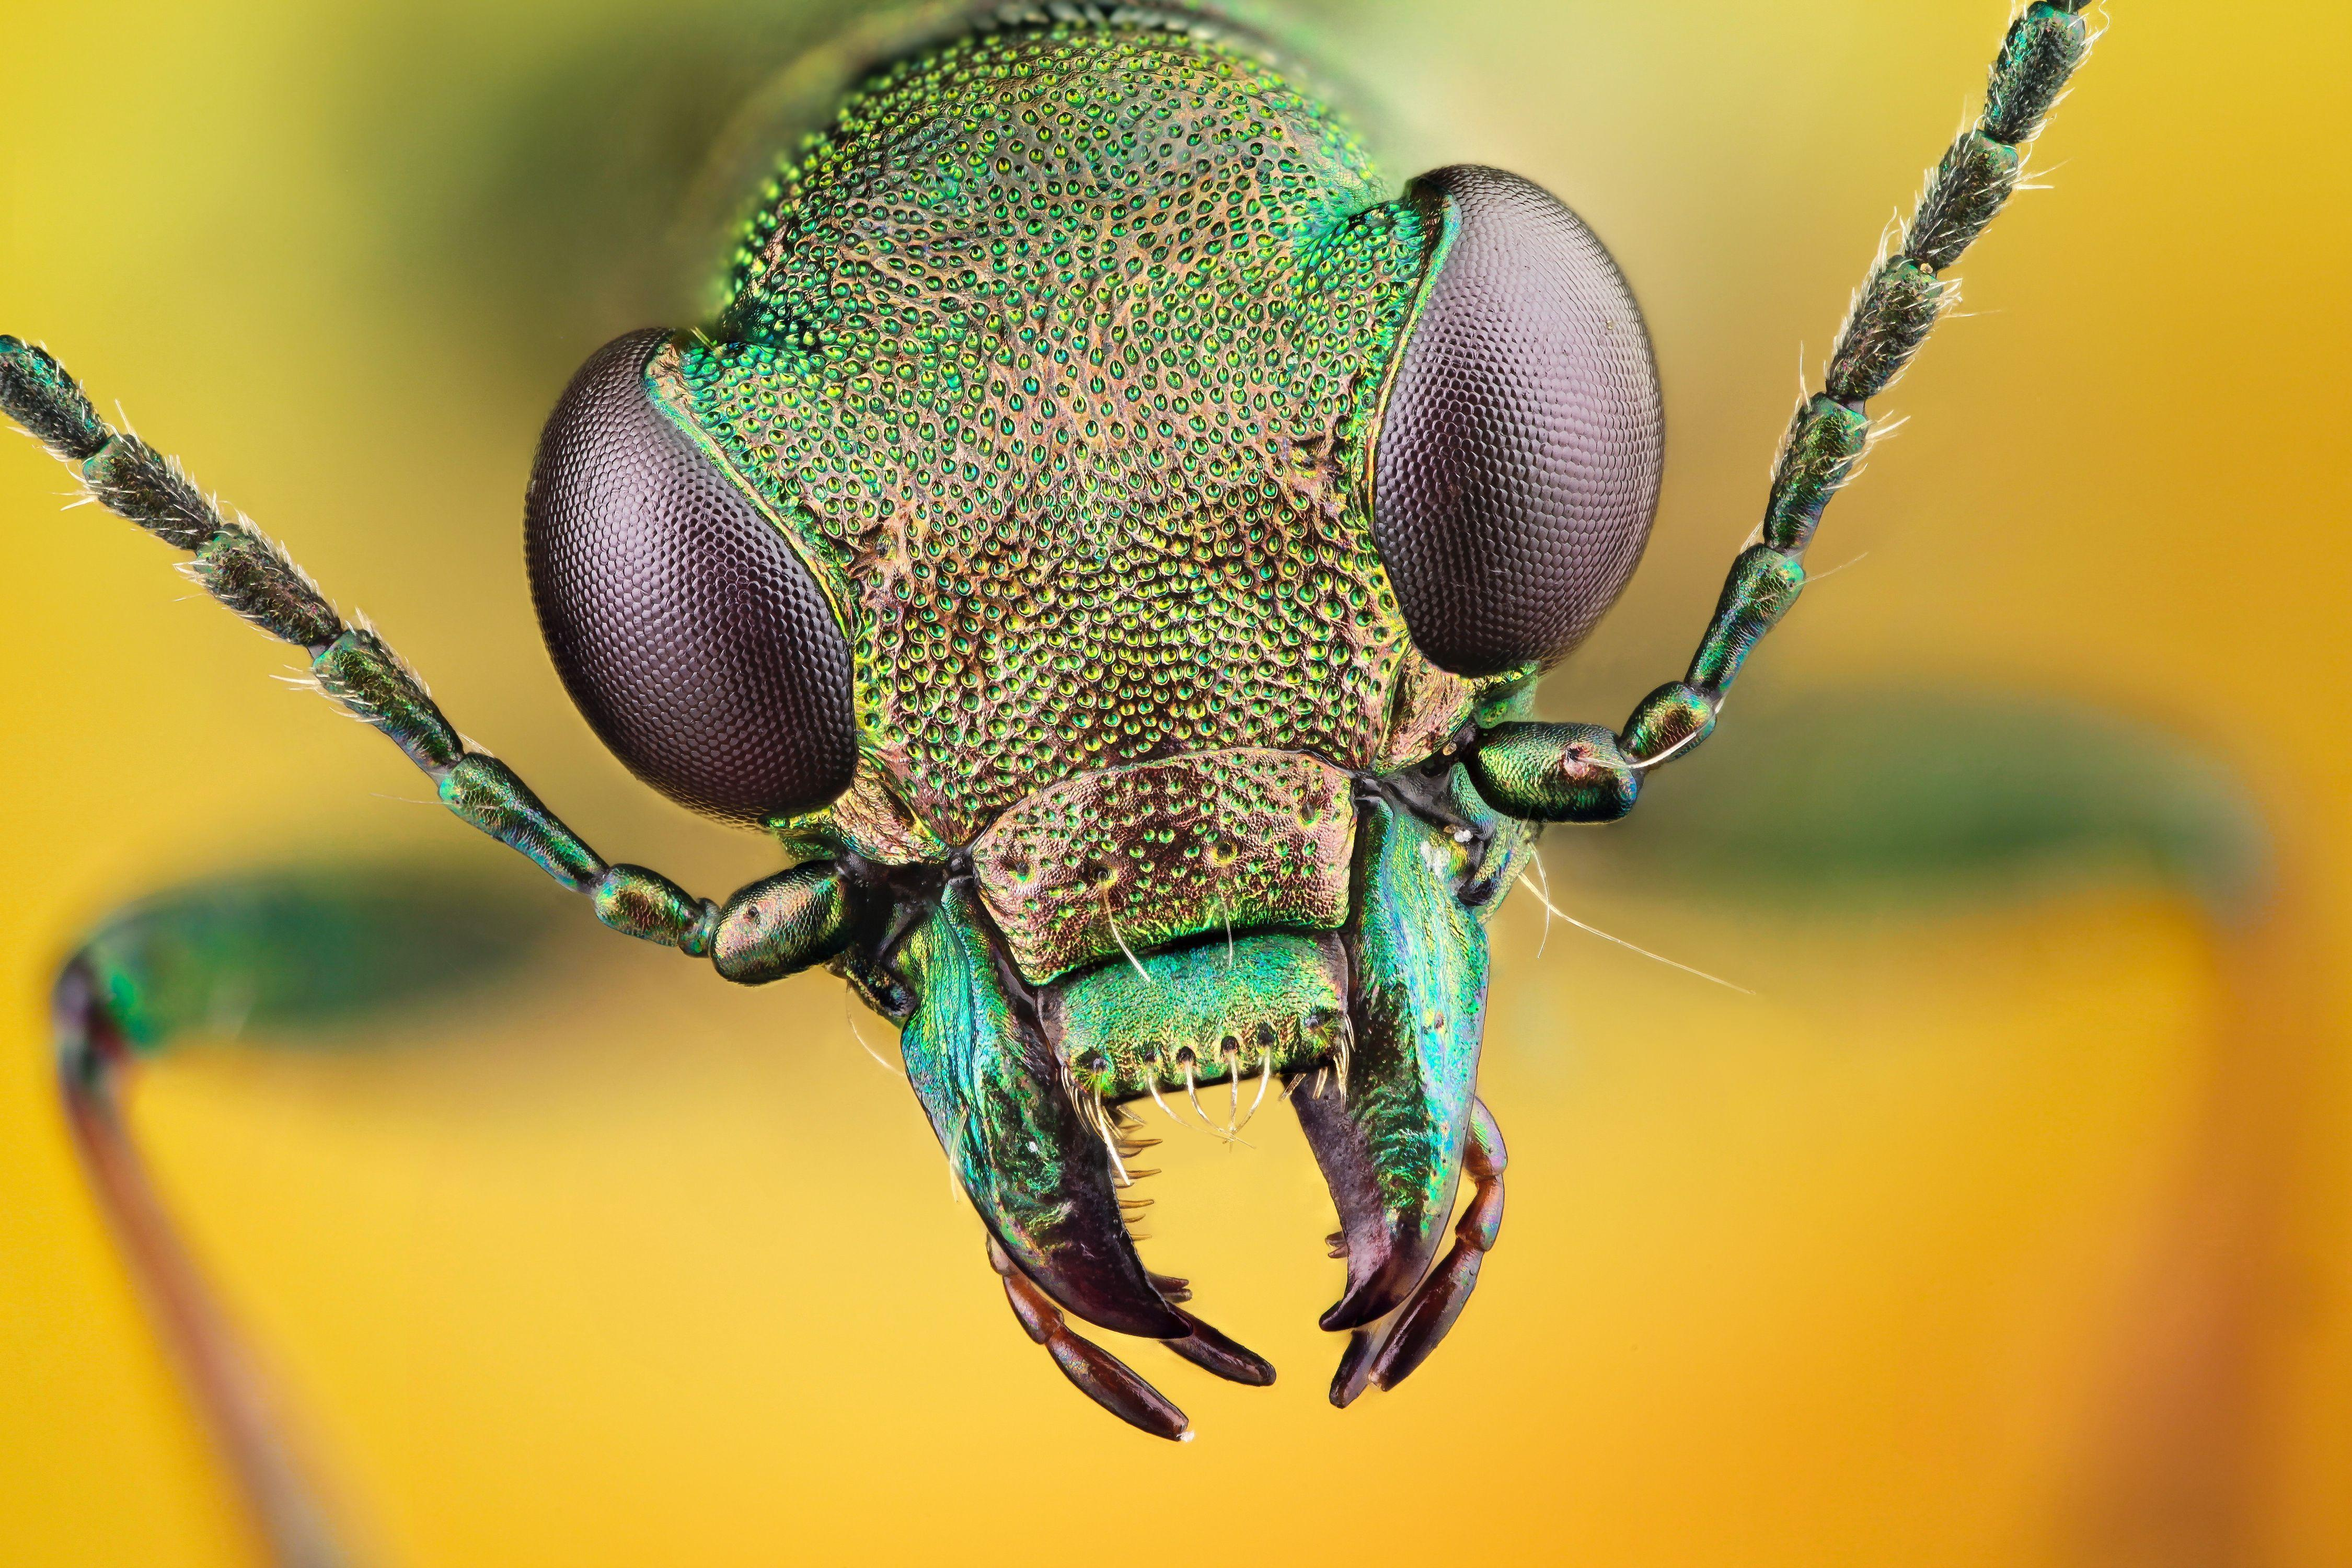 479 Insect HD Wallpapers